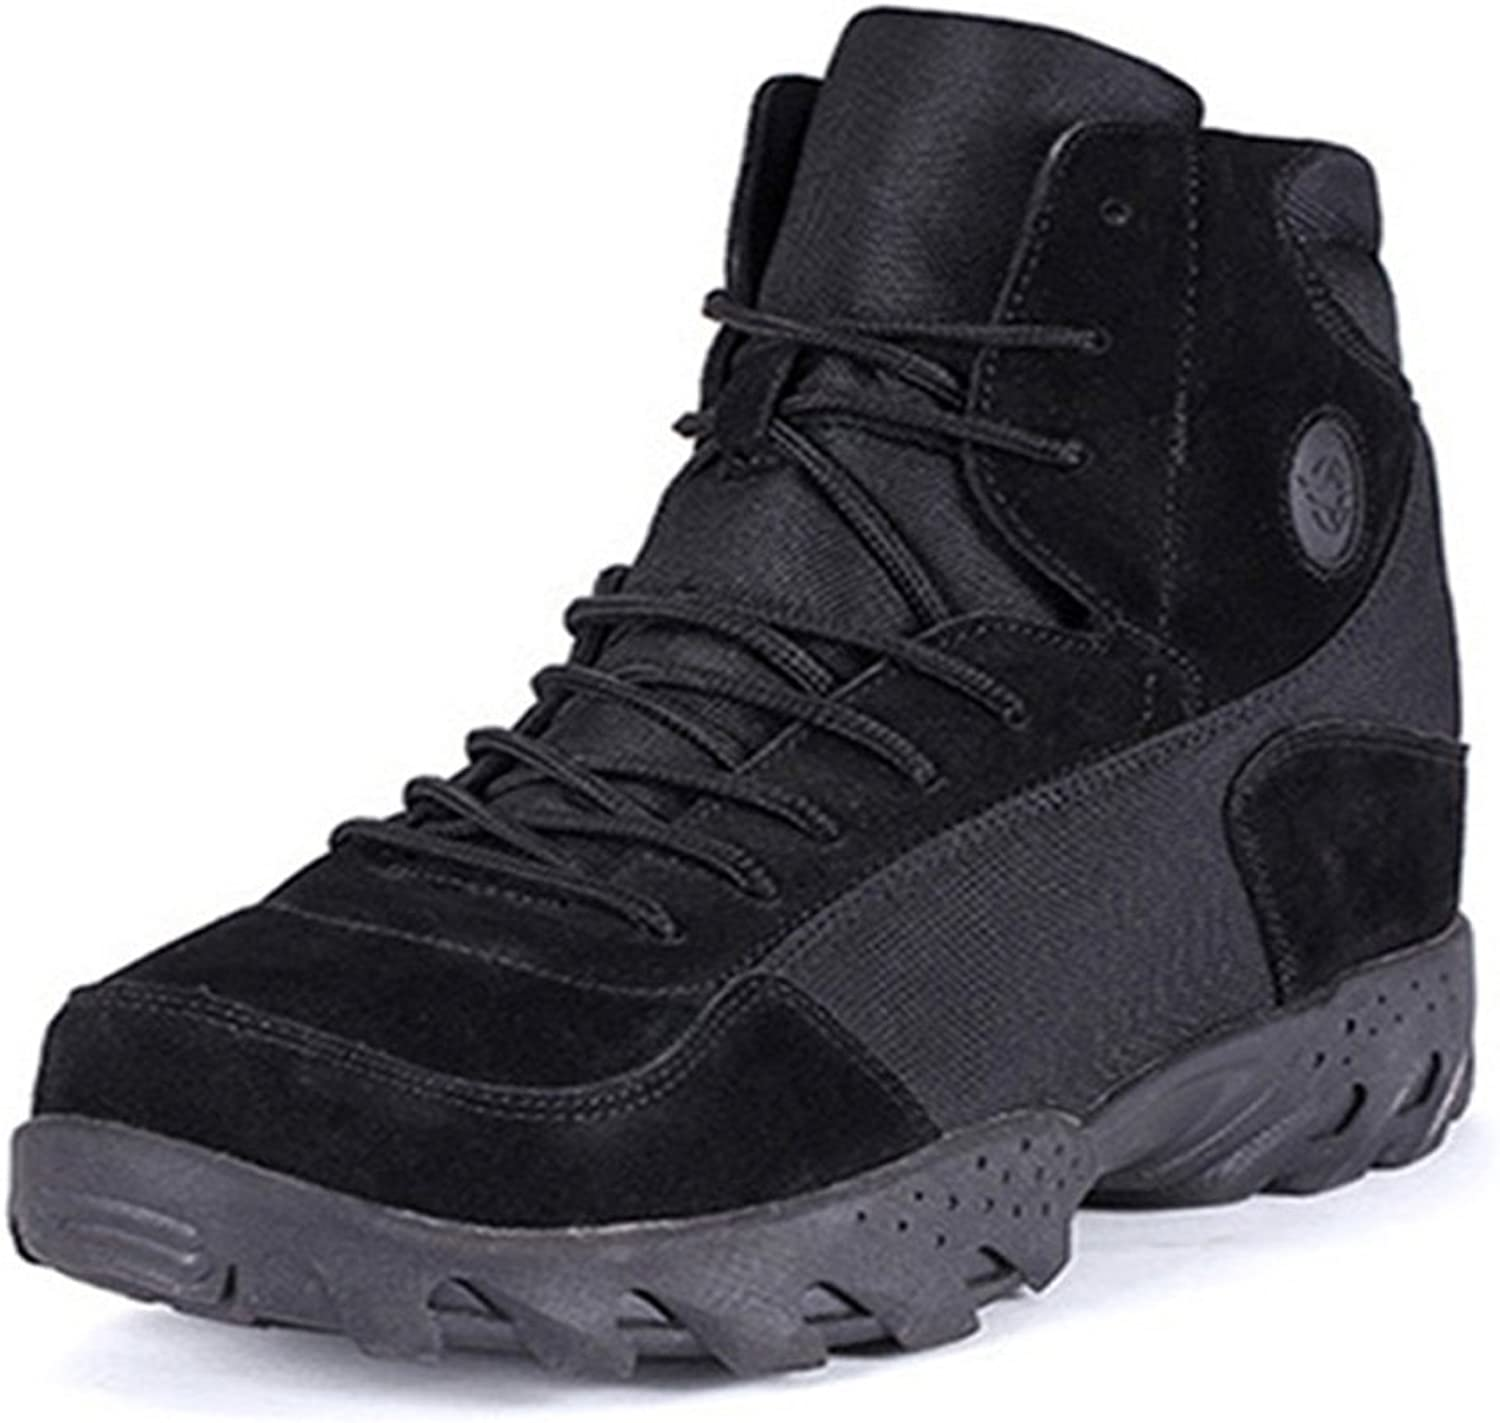 Emansmoer Men's High-top Lace-up Army Tactical Combat Boots shoes Suede Waterproof Outdoor Hiking Trail Trekking Boots